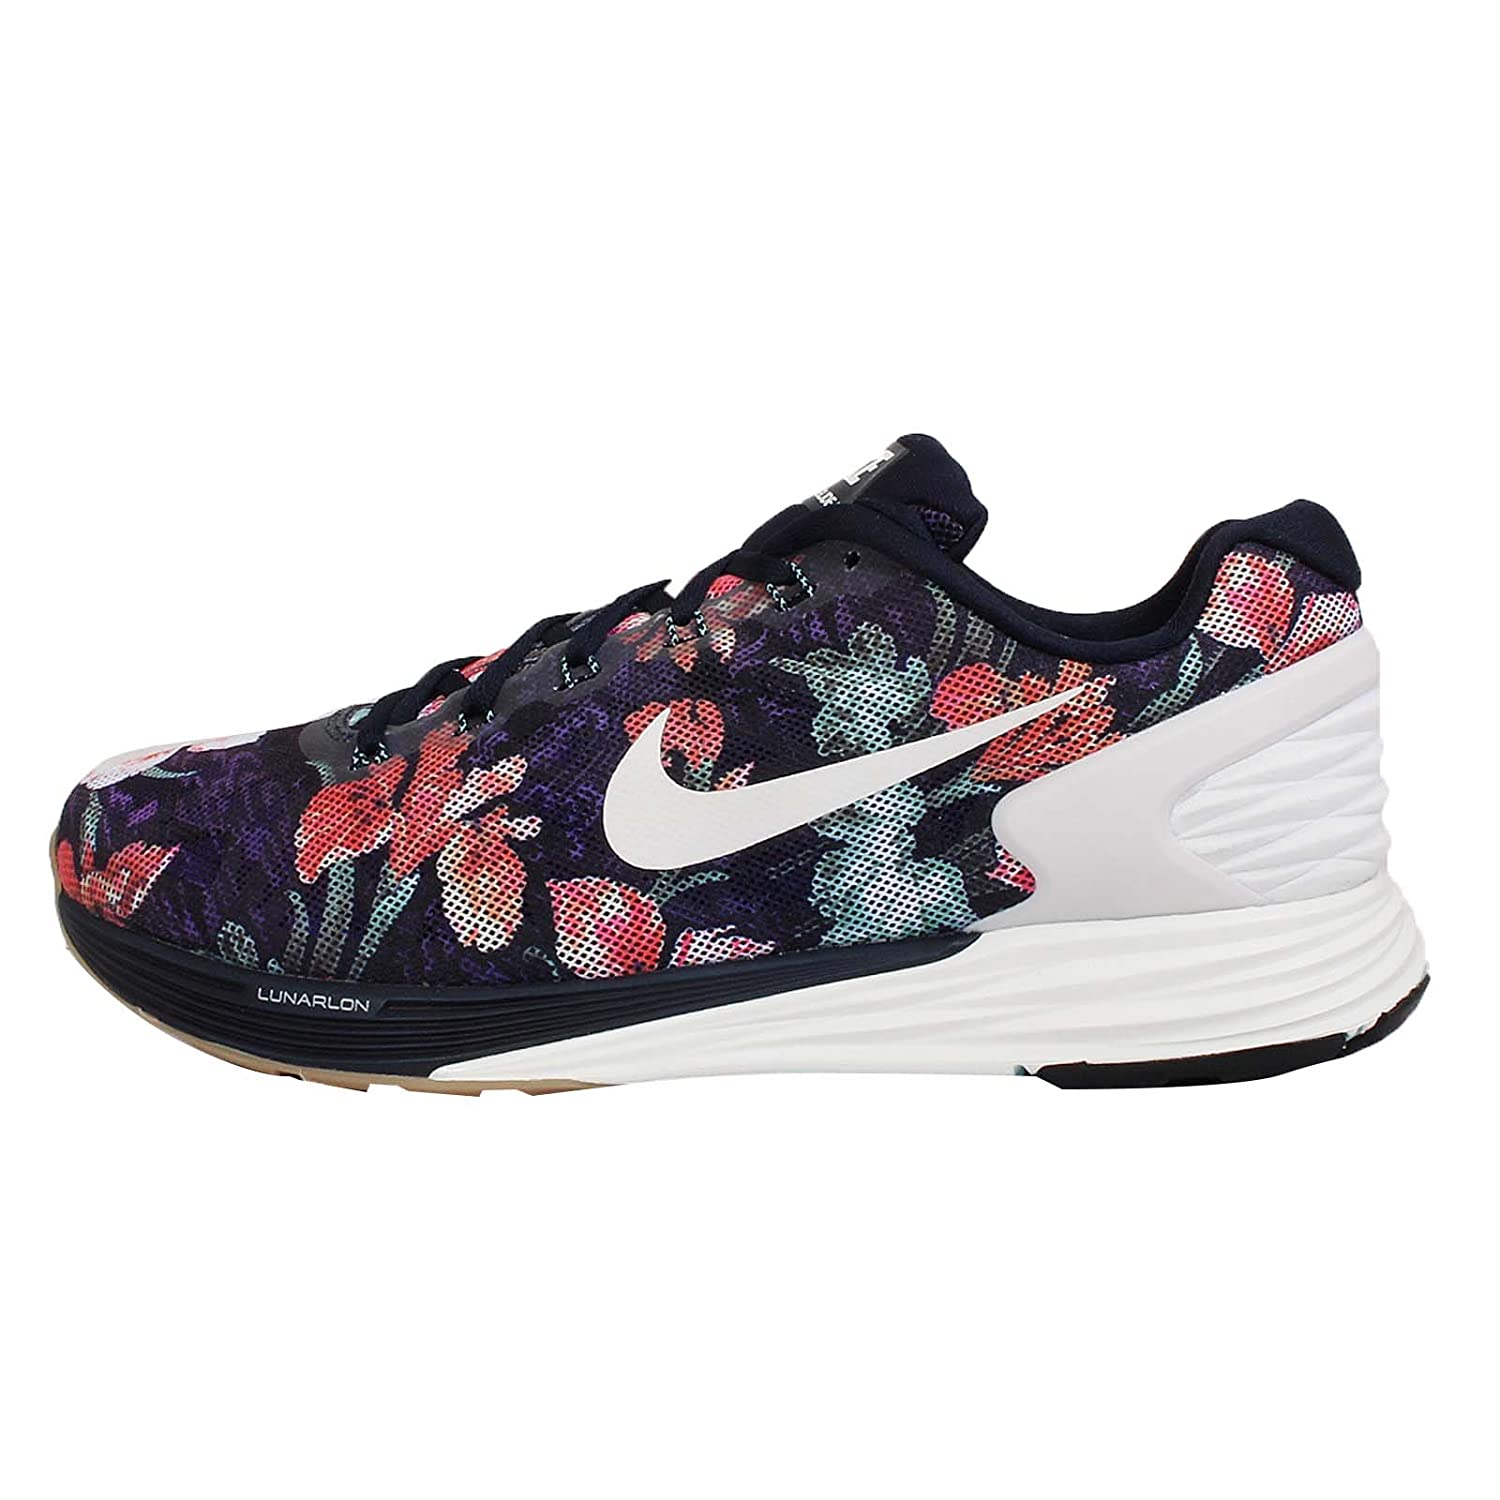 sports shoes 247c0 83f60 Nike Lunarglide 6 Photosynthesis Mens Running Shoes, Dark Obsidian, Size 13  US  Buy Online at Low Prices in India - Amazon.in